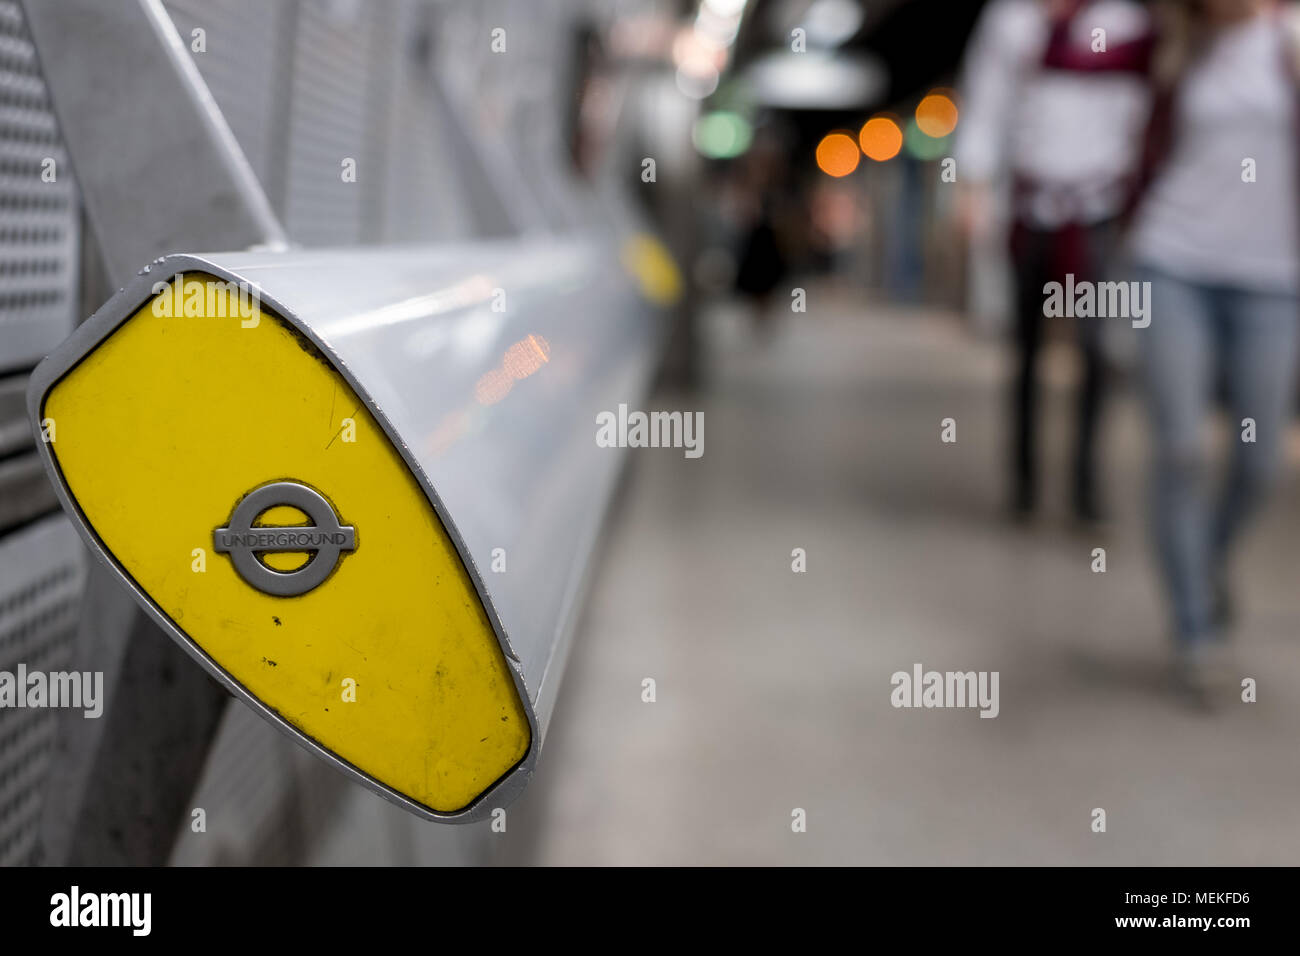 In foreground, end of handrail at Westminster underground station, London showing TFL roundel. In background blurred commuters walking along platform, - Stock Image